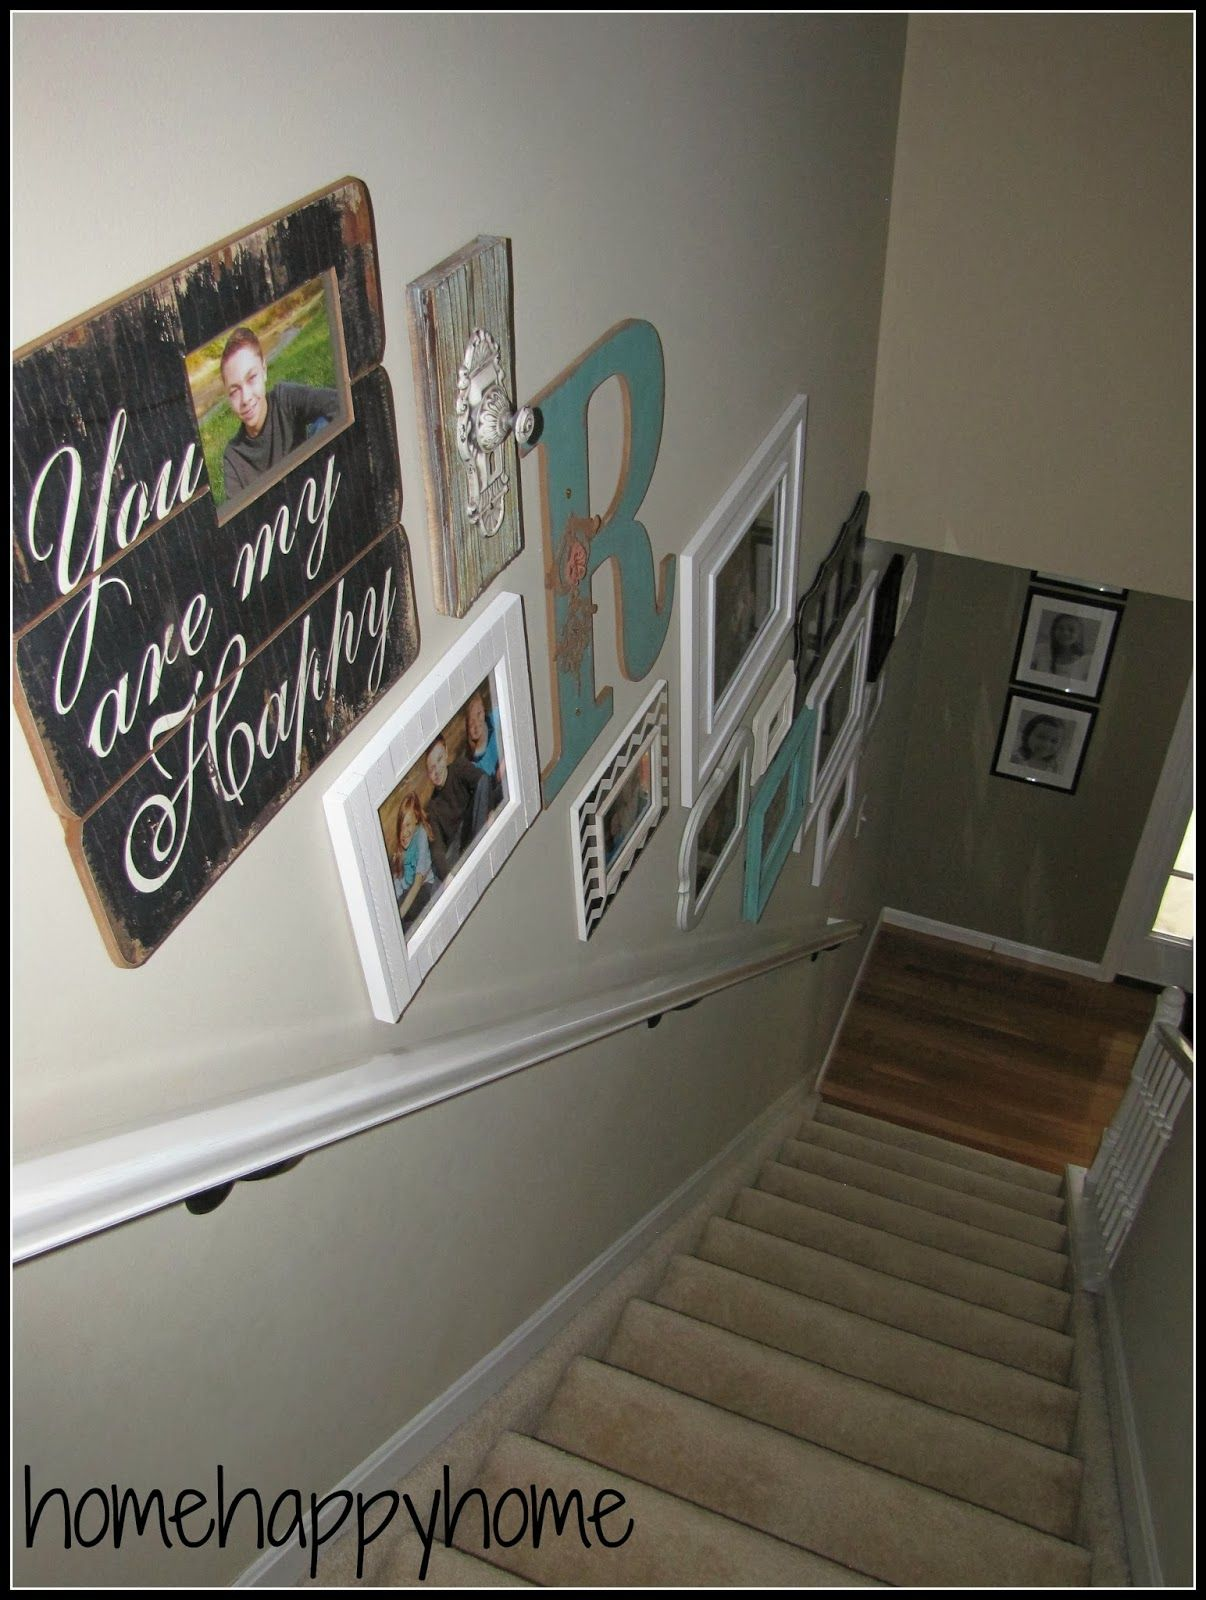 Home happy home staircase gallery wall design ideas pinterest